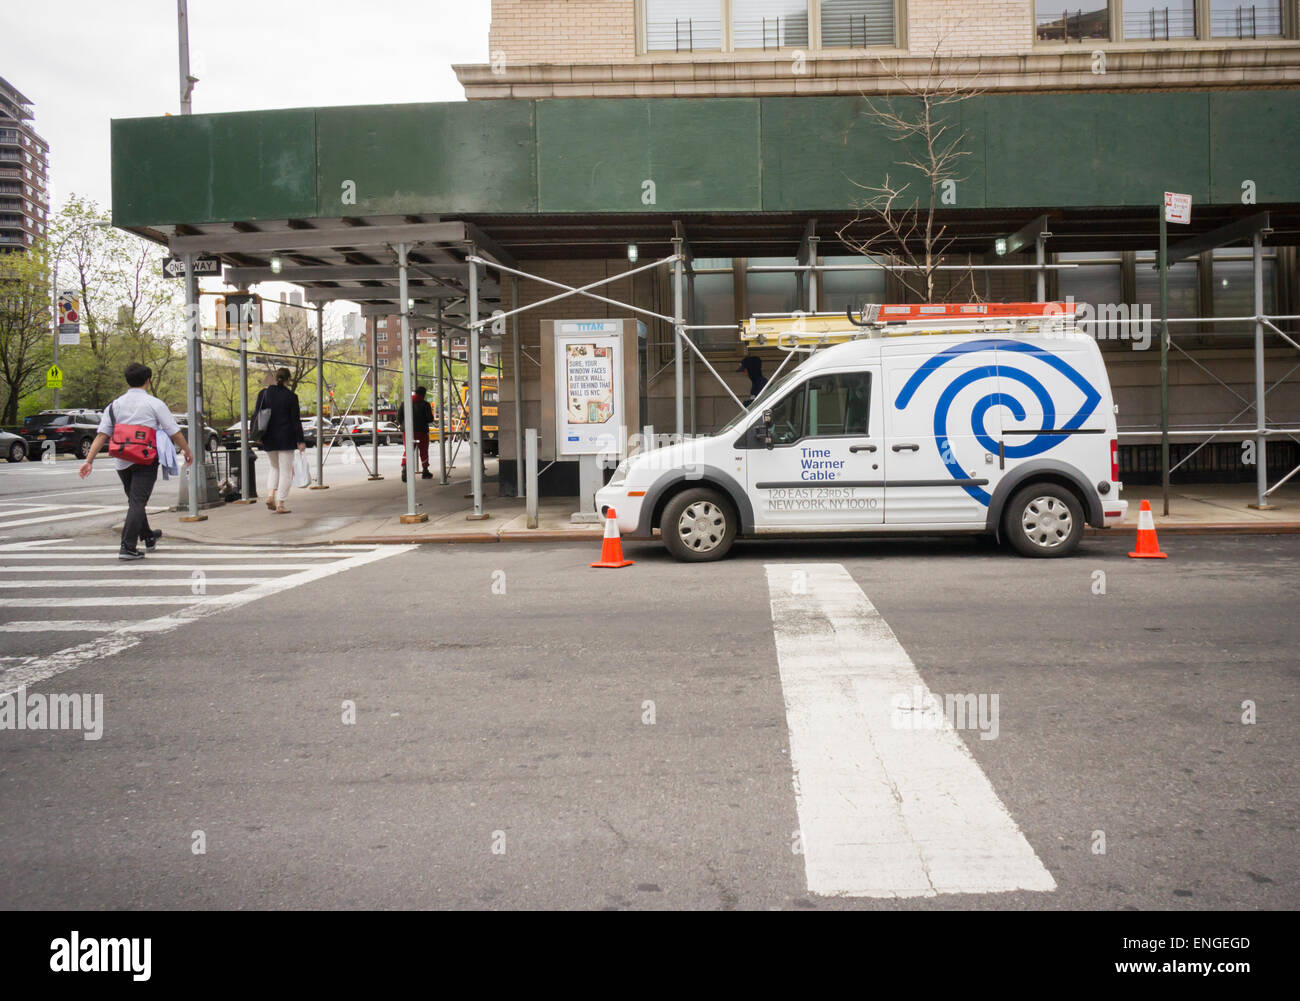 Awesome A Time Warner Cable Van In The Chelsea Neighborhood Of New York On  Thursday, April